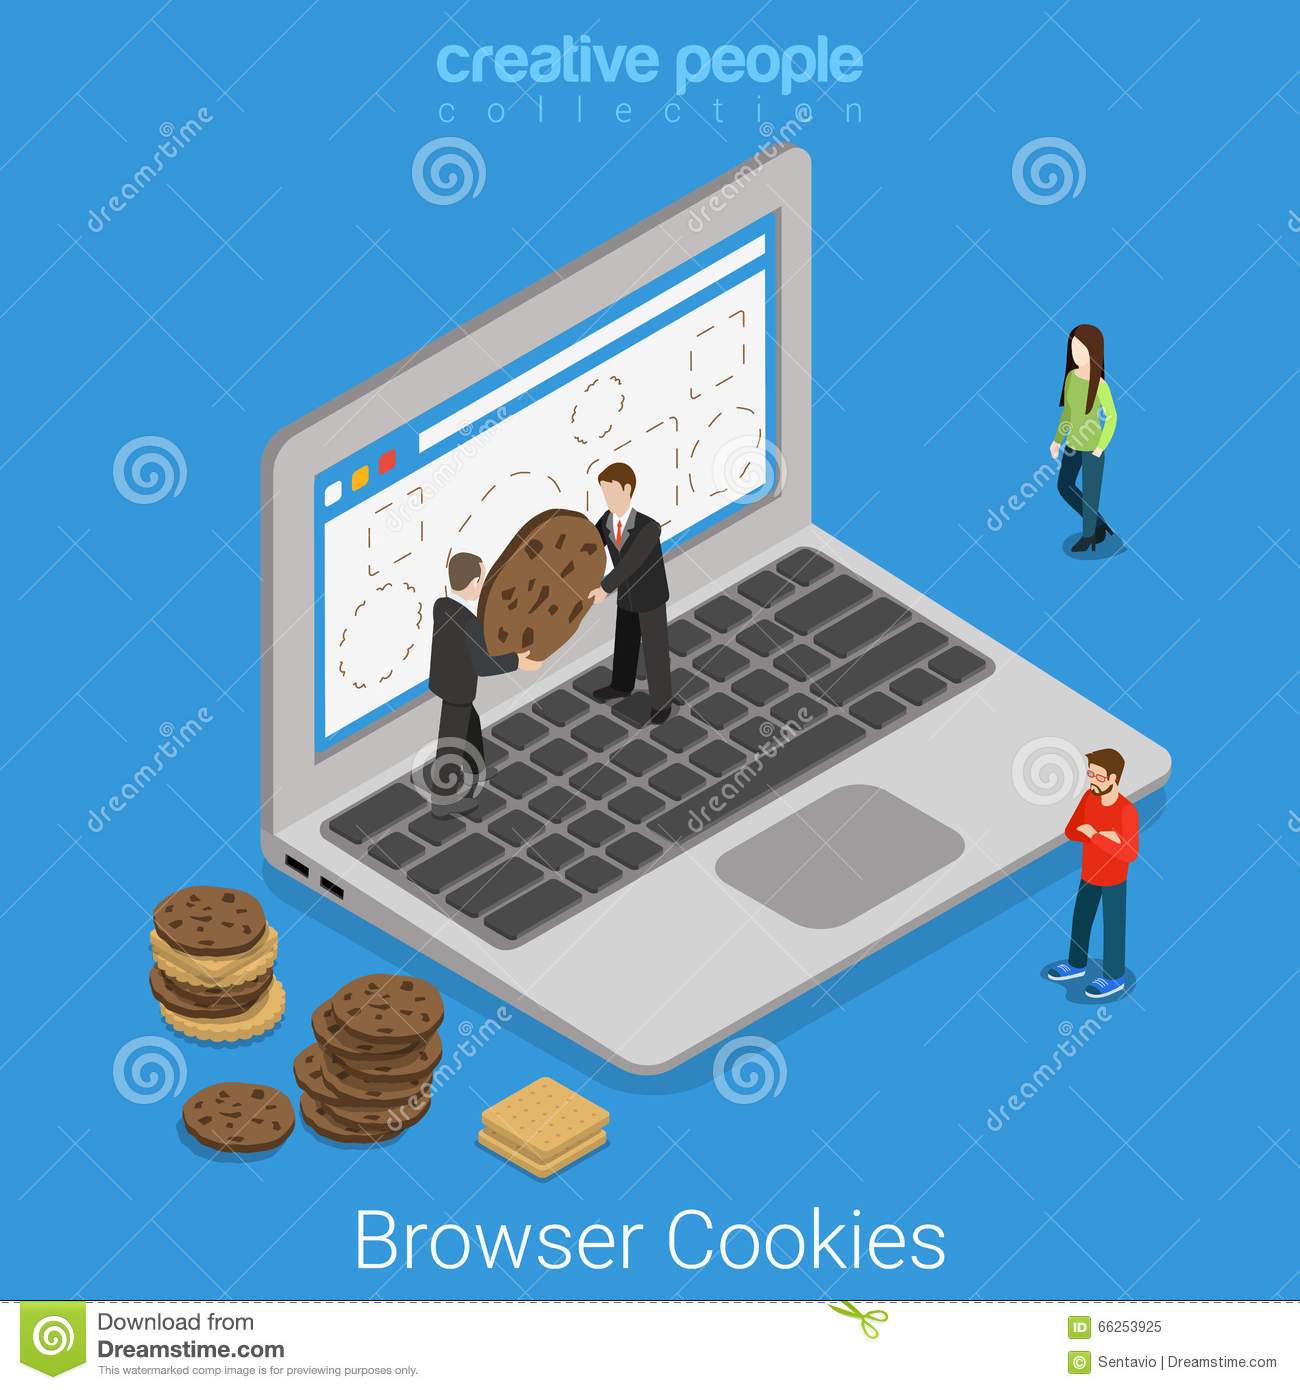 Laptop Browser Cookie Internet Technology Flat Isometric: browser cookies